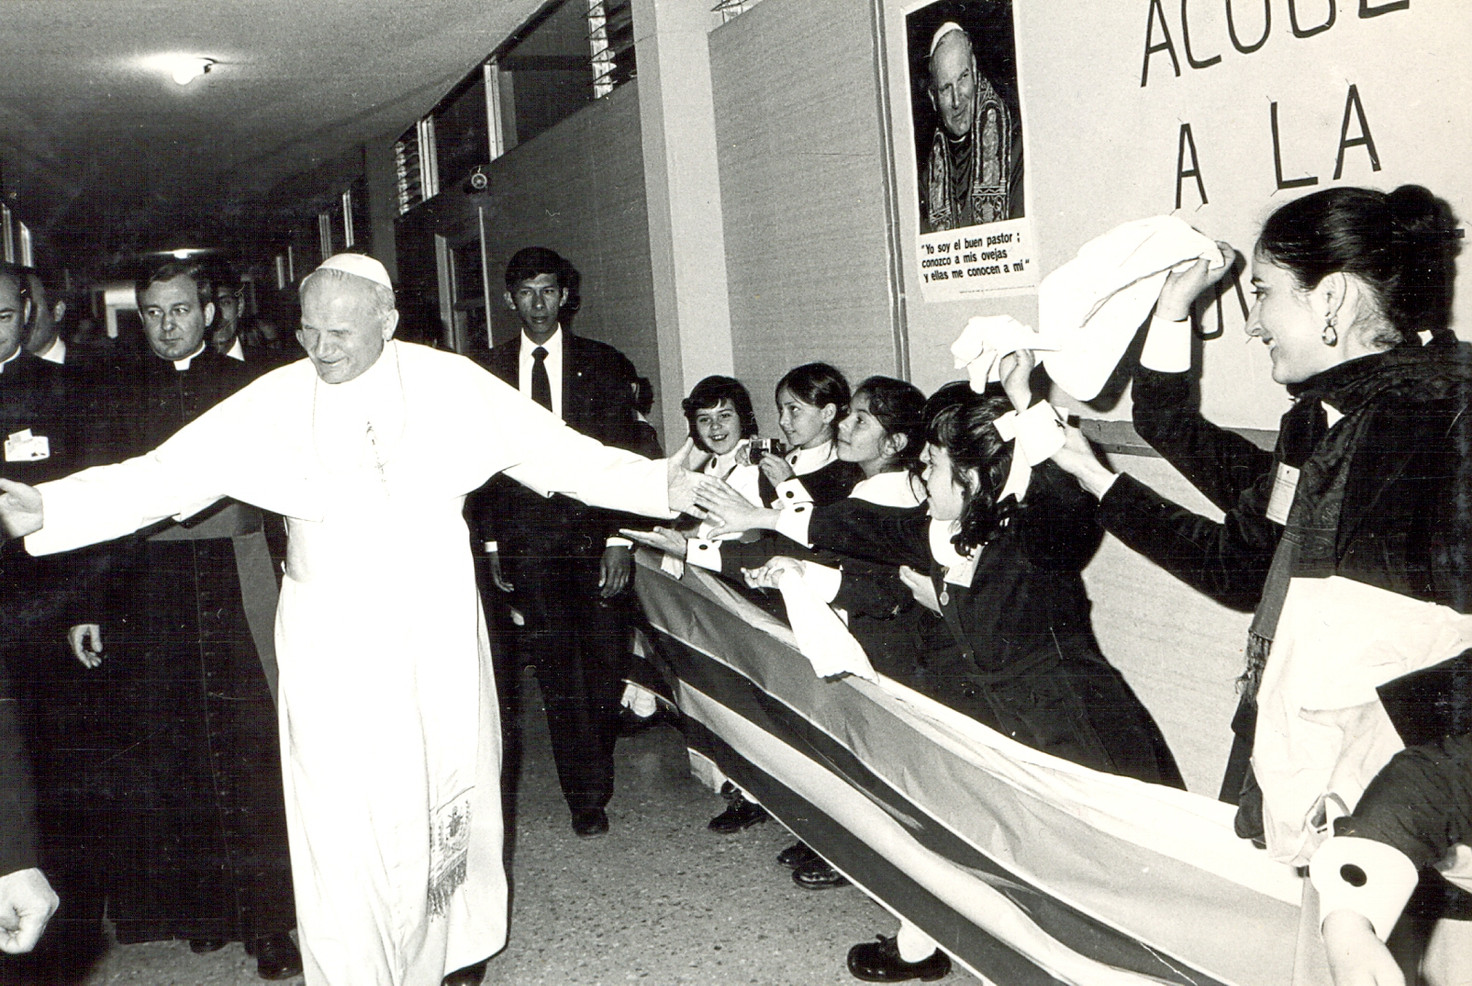 Pope John Paul II visited Miguel Ángel Florida during his visit to Mexico City in 1979. His helicopter landed in the schoolyard. Thousands filled the schoolyard at Miguel Angel to greet Pope John Paul II.